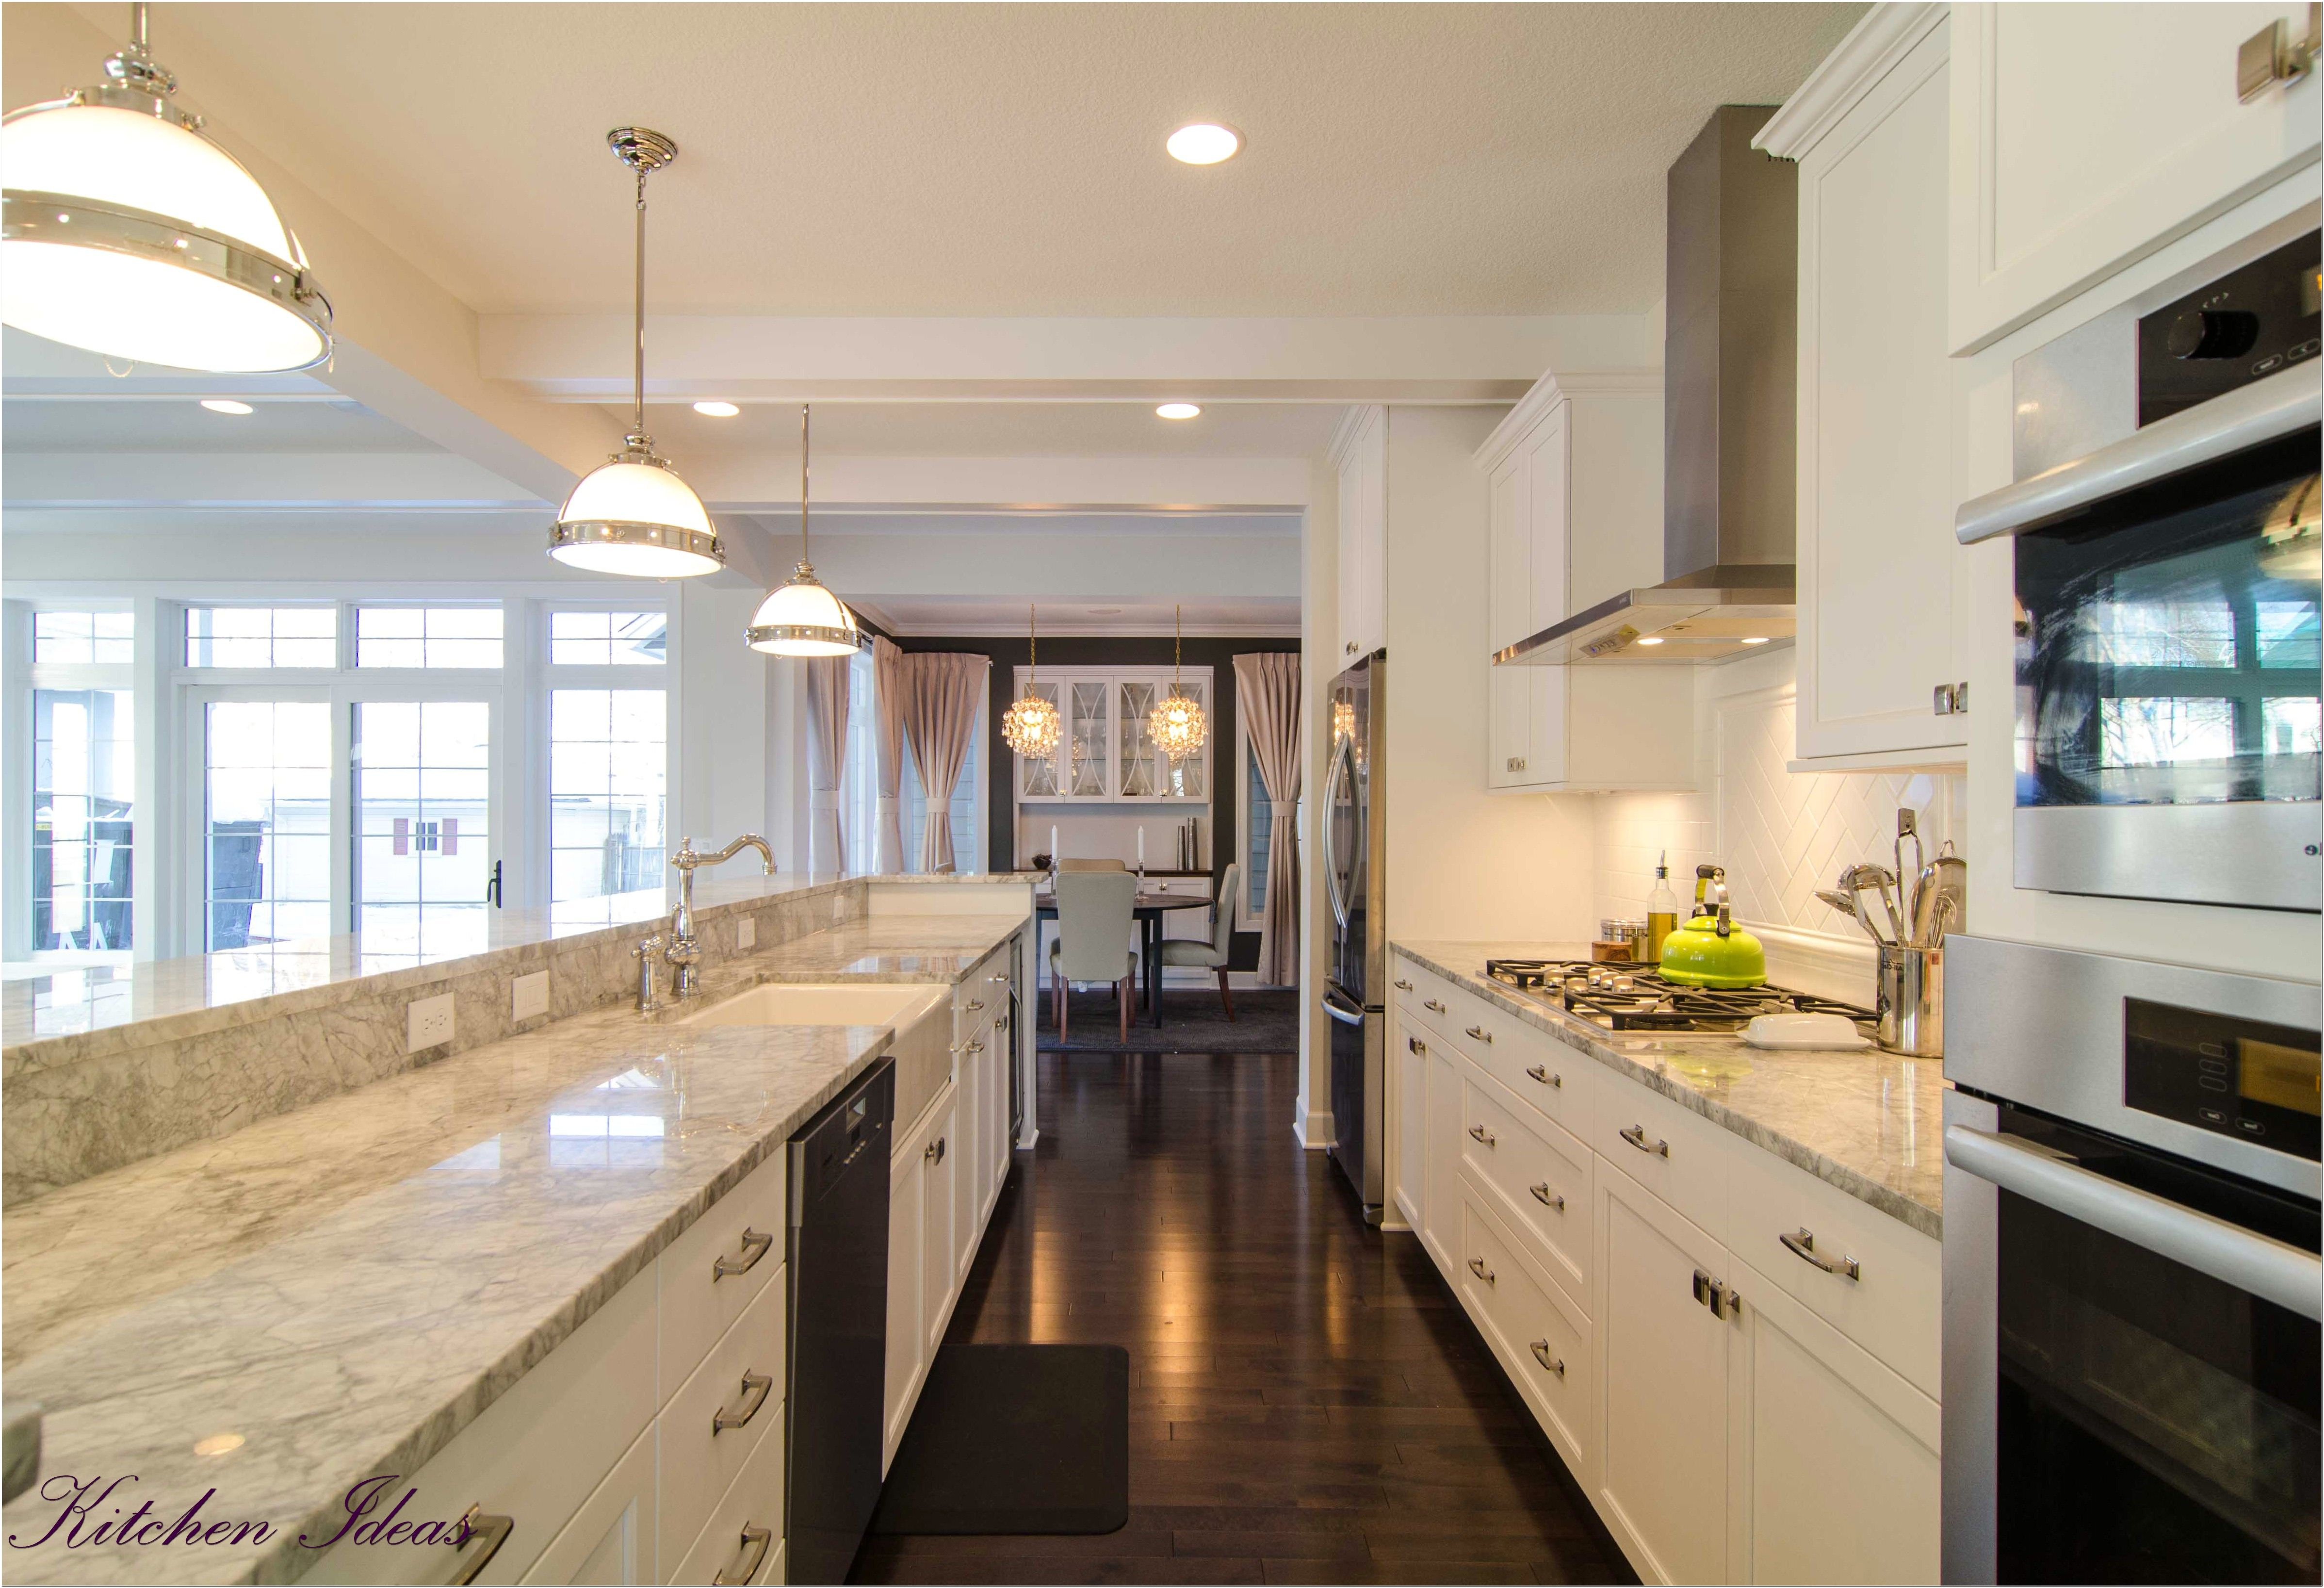 galley kitchen ideas you can look kitchen island ideas you can look small kitchen ideas yo on kitchen remodel galley style id=58007